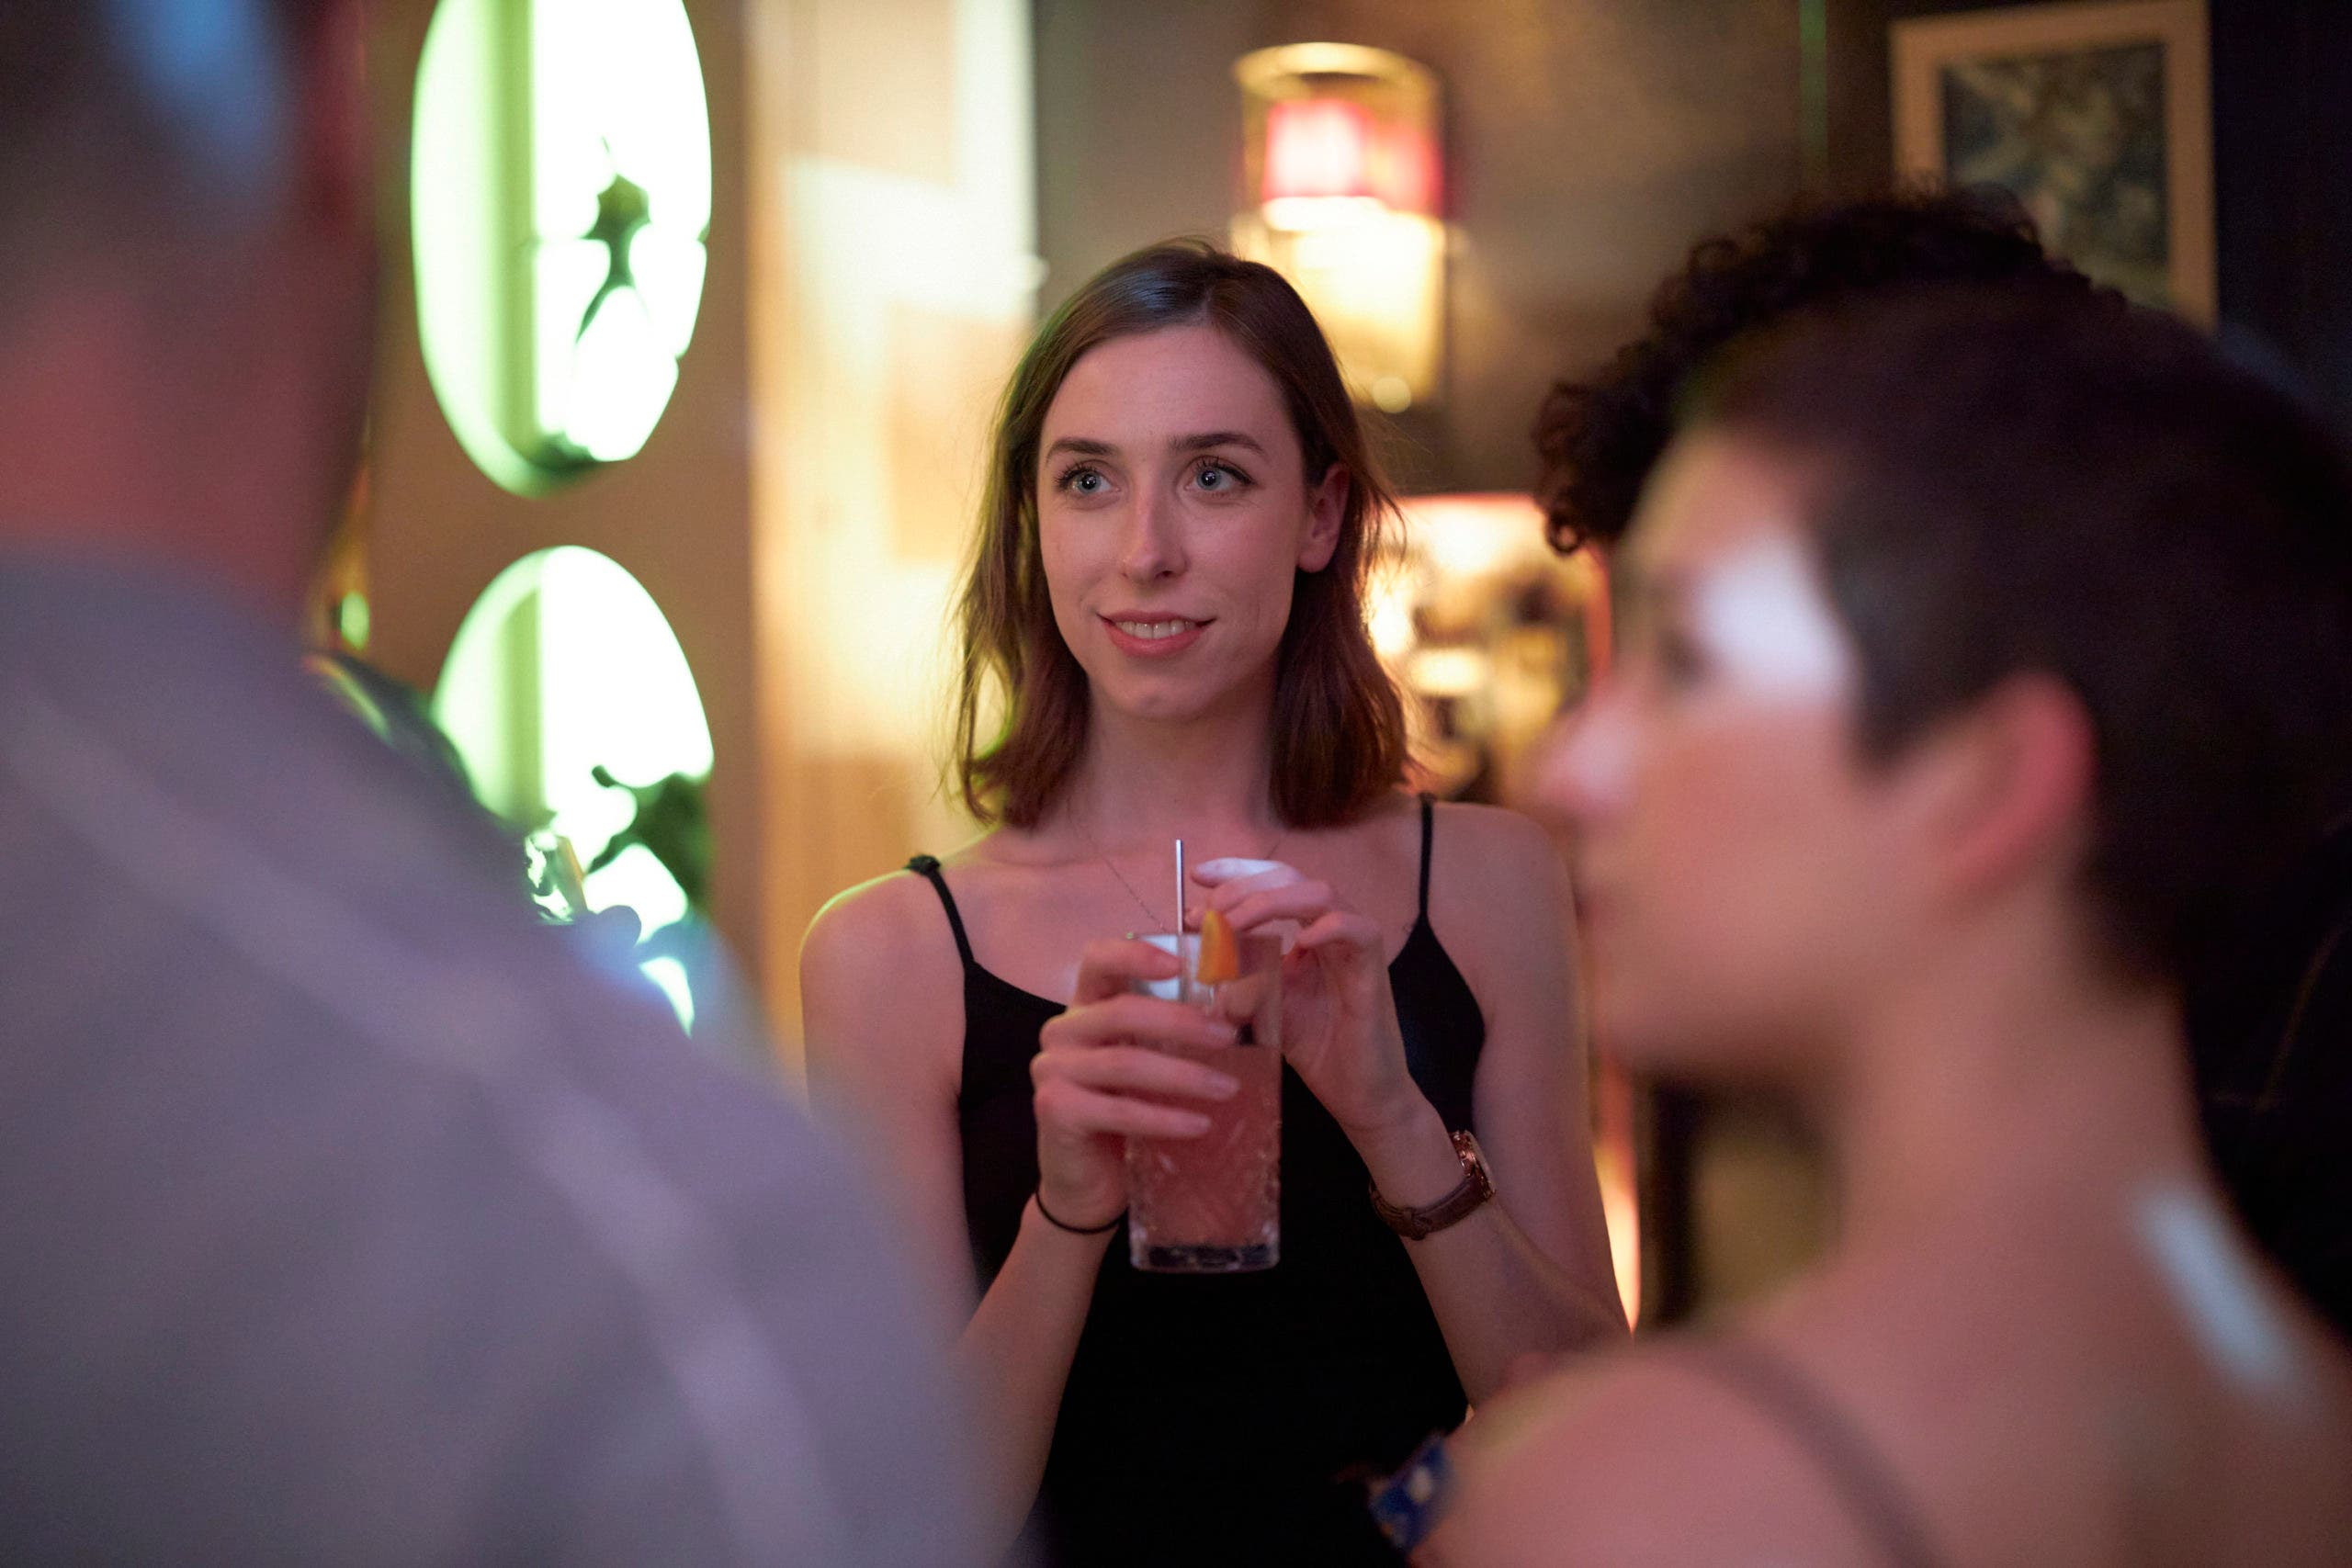 Tips for Shooting a Party in Low Light: What Photographers Should Know